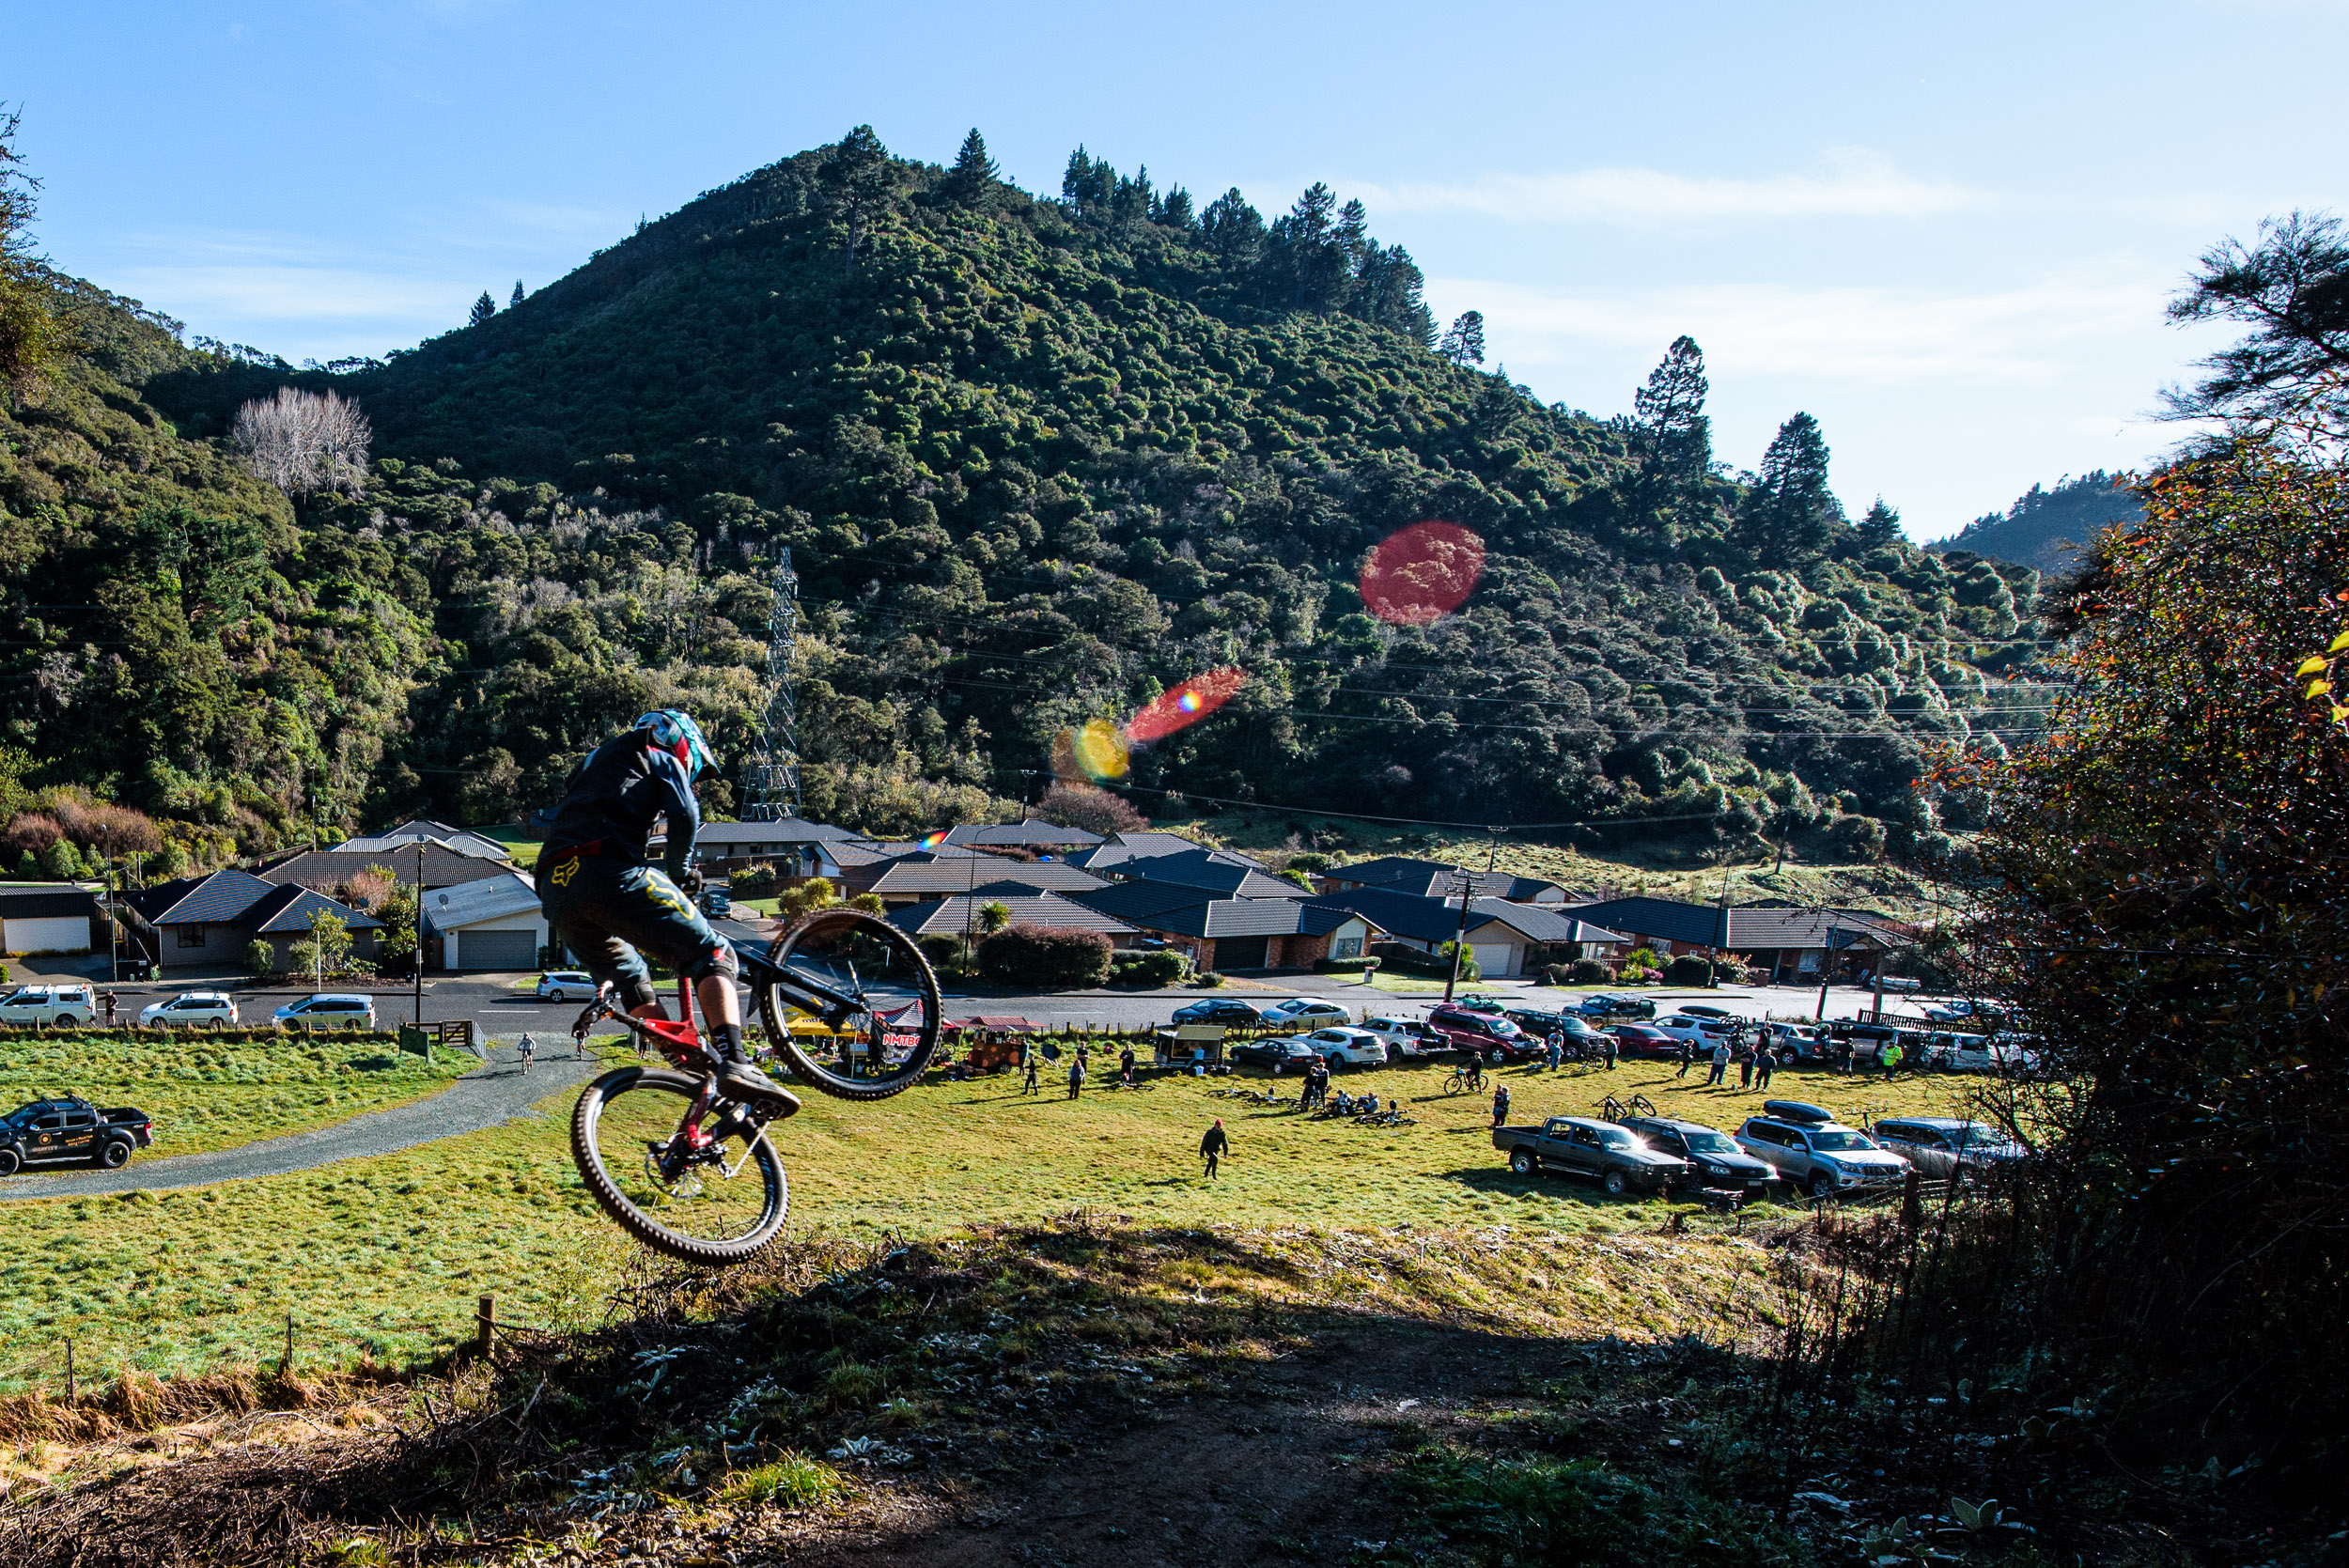 Dh winter series… Coming to a back yard near you…